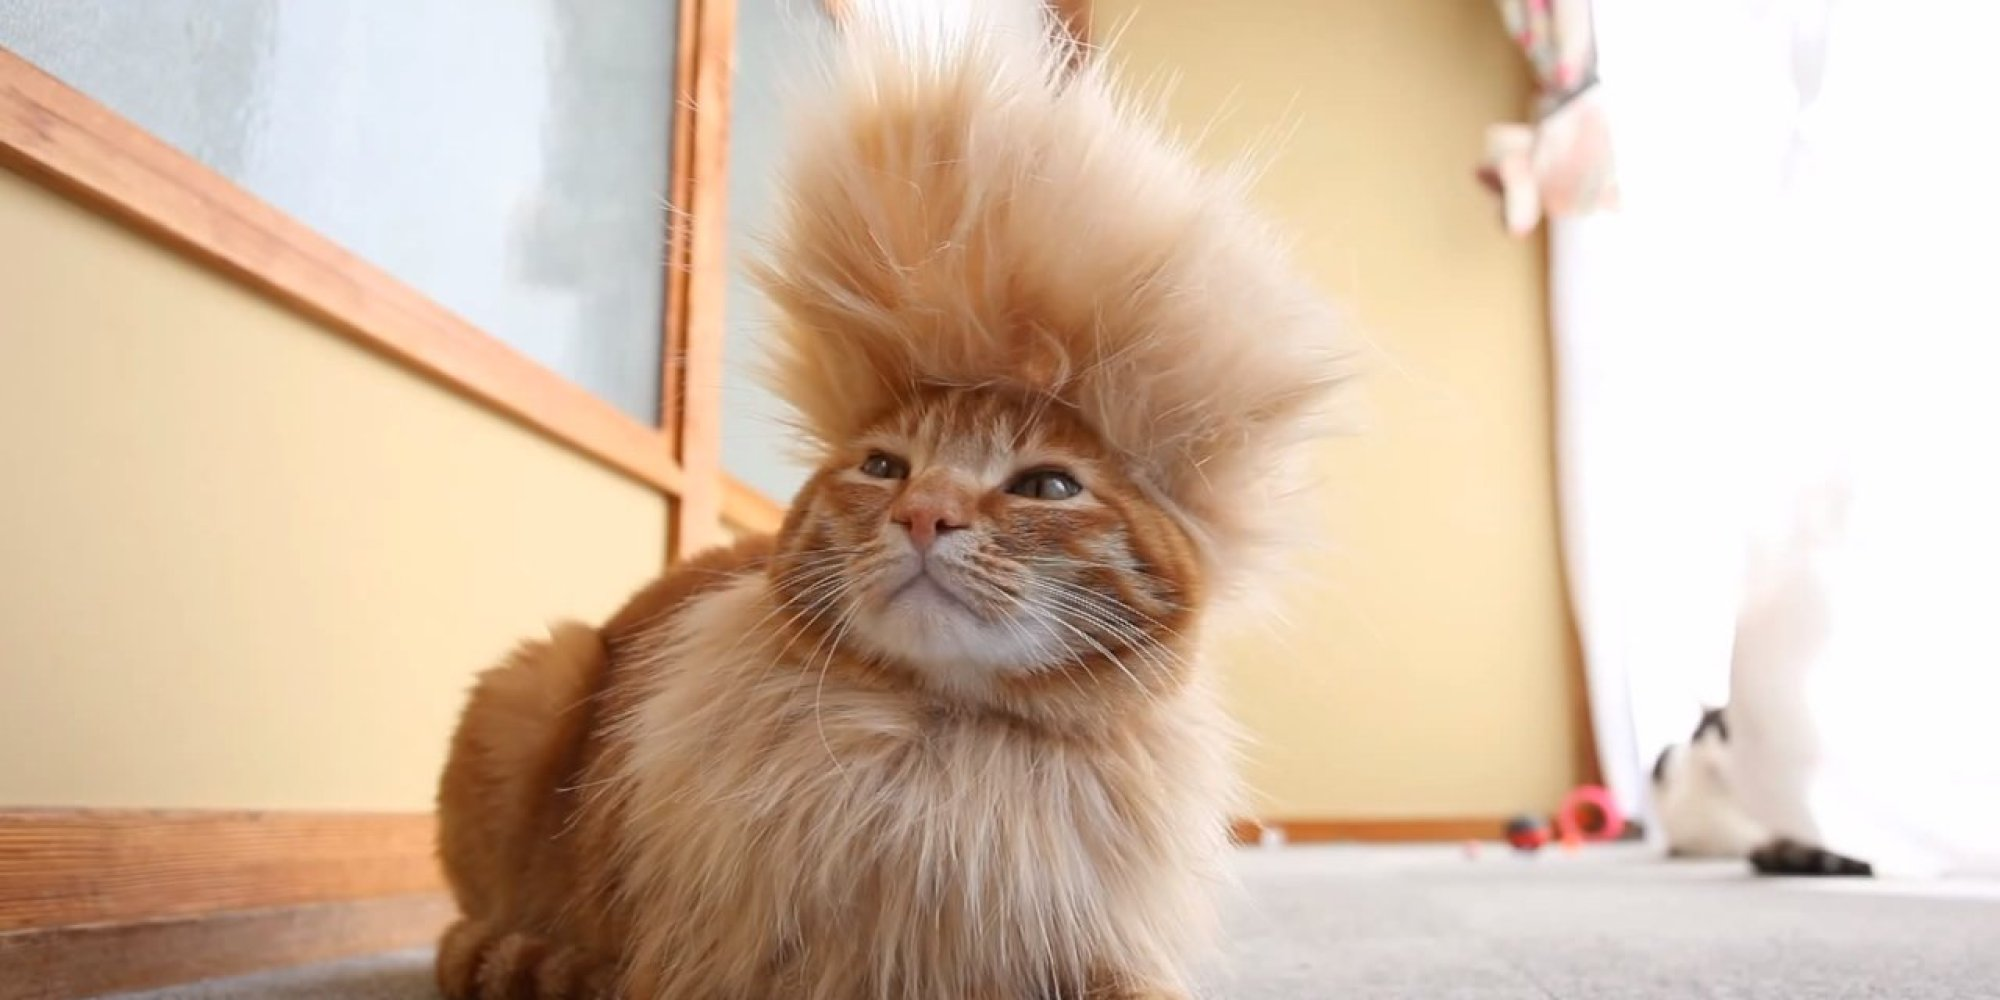 Never Fear Mohawk Cat Is Here Video